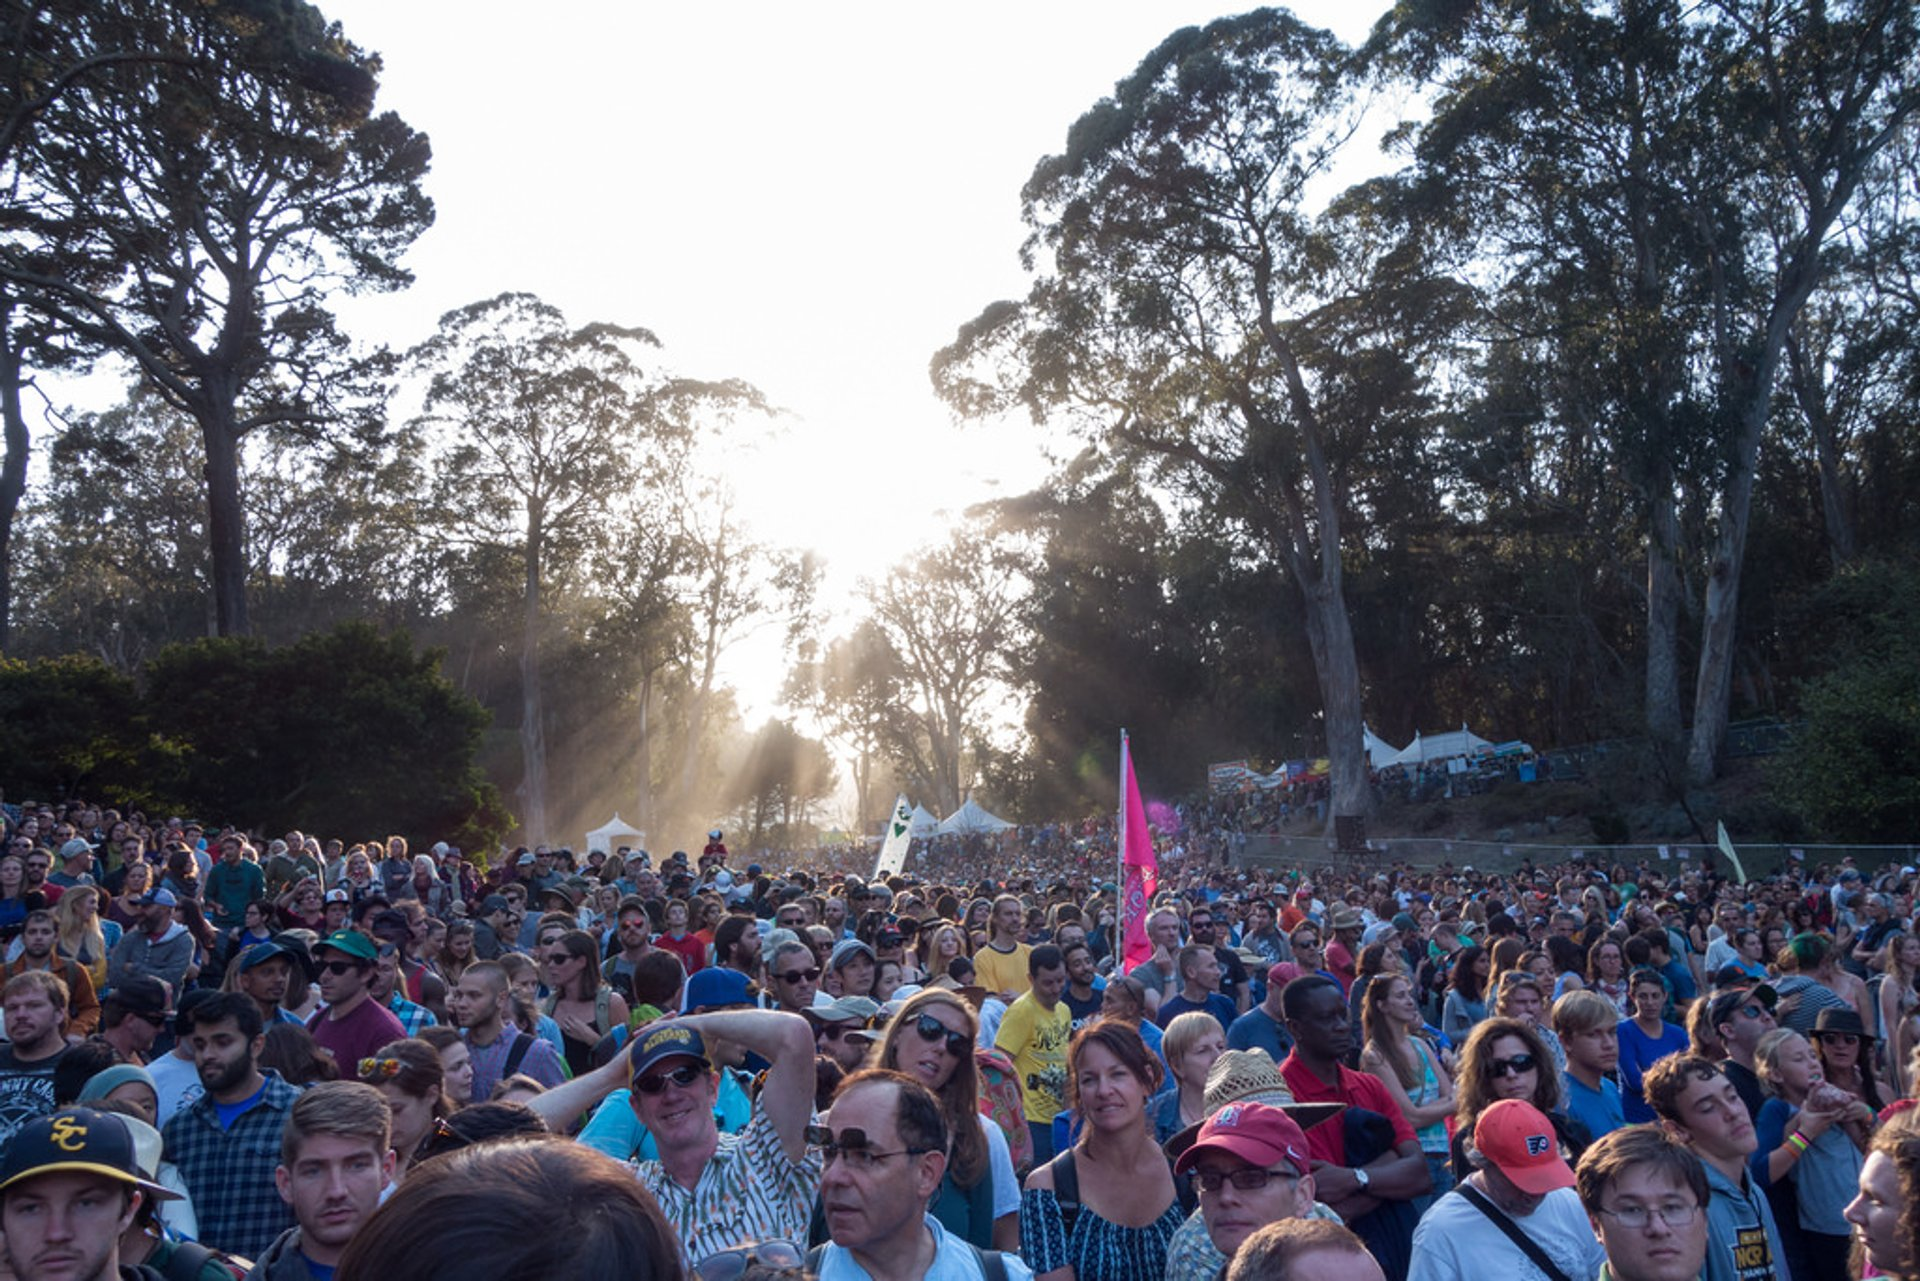 Hardly Strictly Bluegrass in San Francisco - Best Season 2020